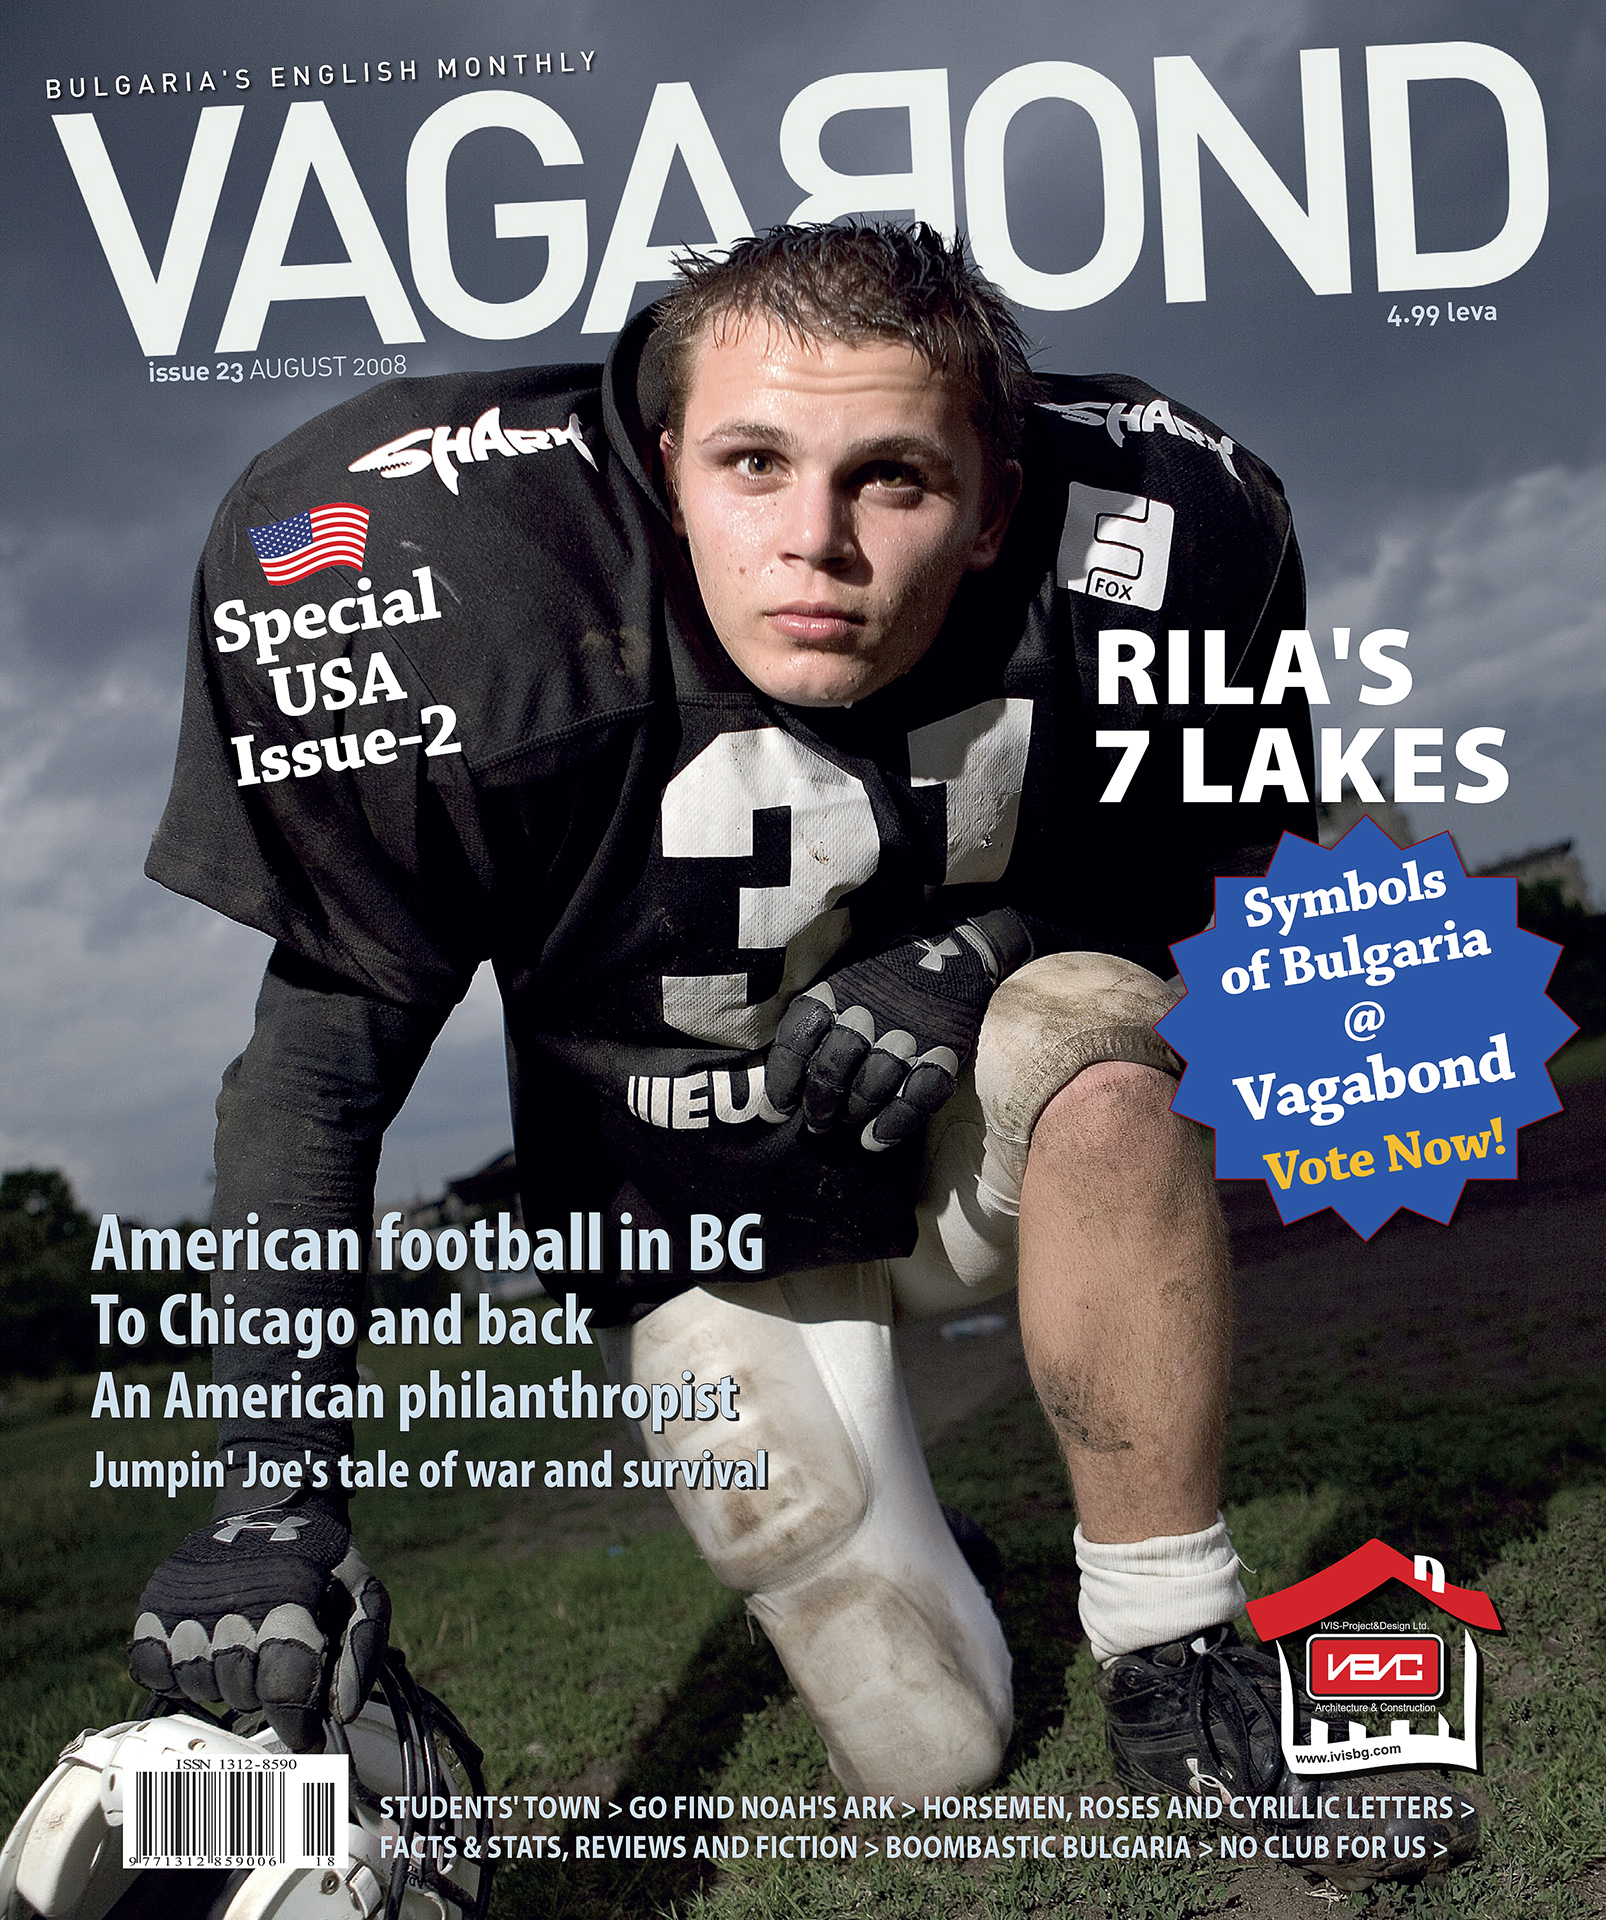 cover issue 23, August 2008, Vagabond magazine